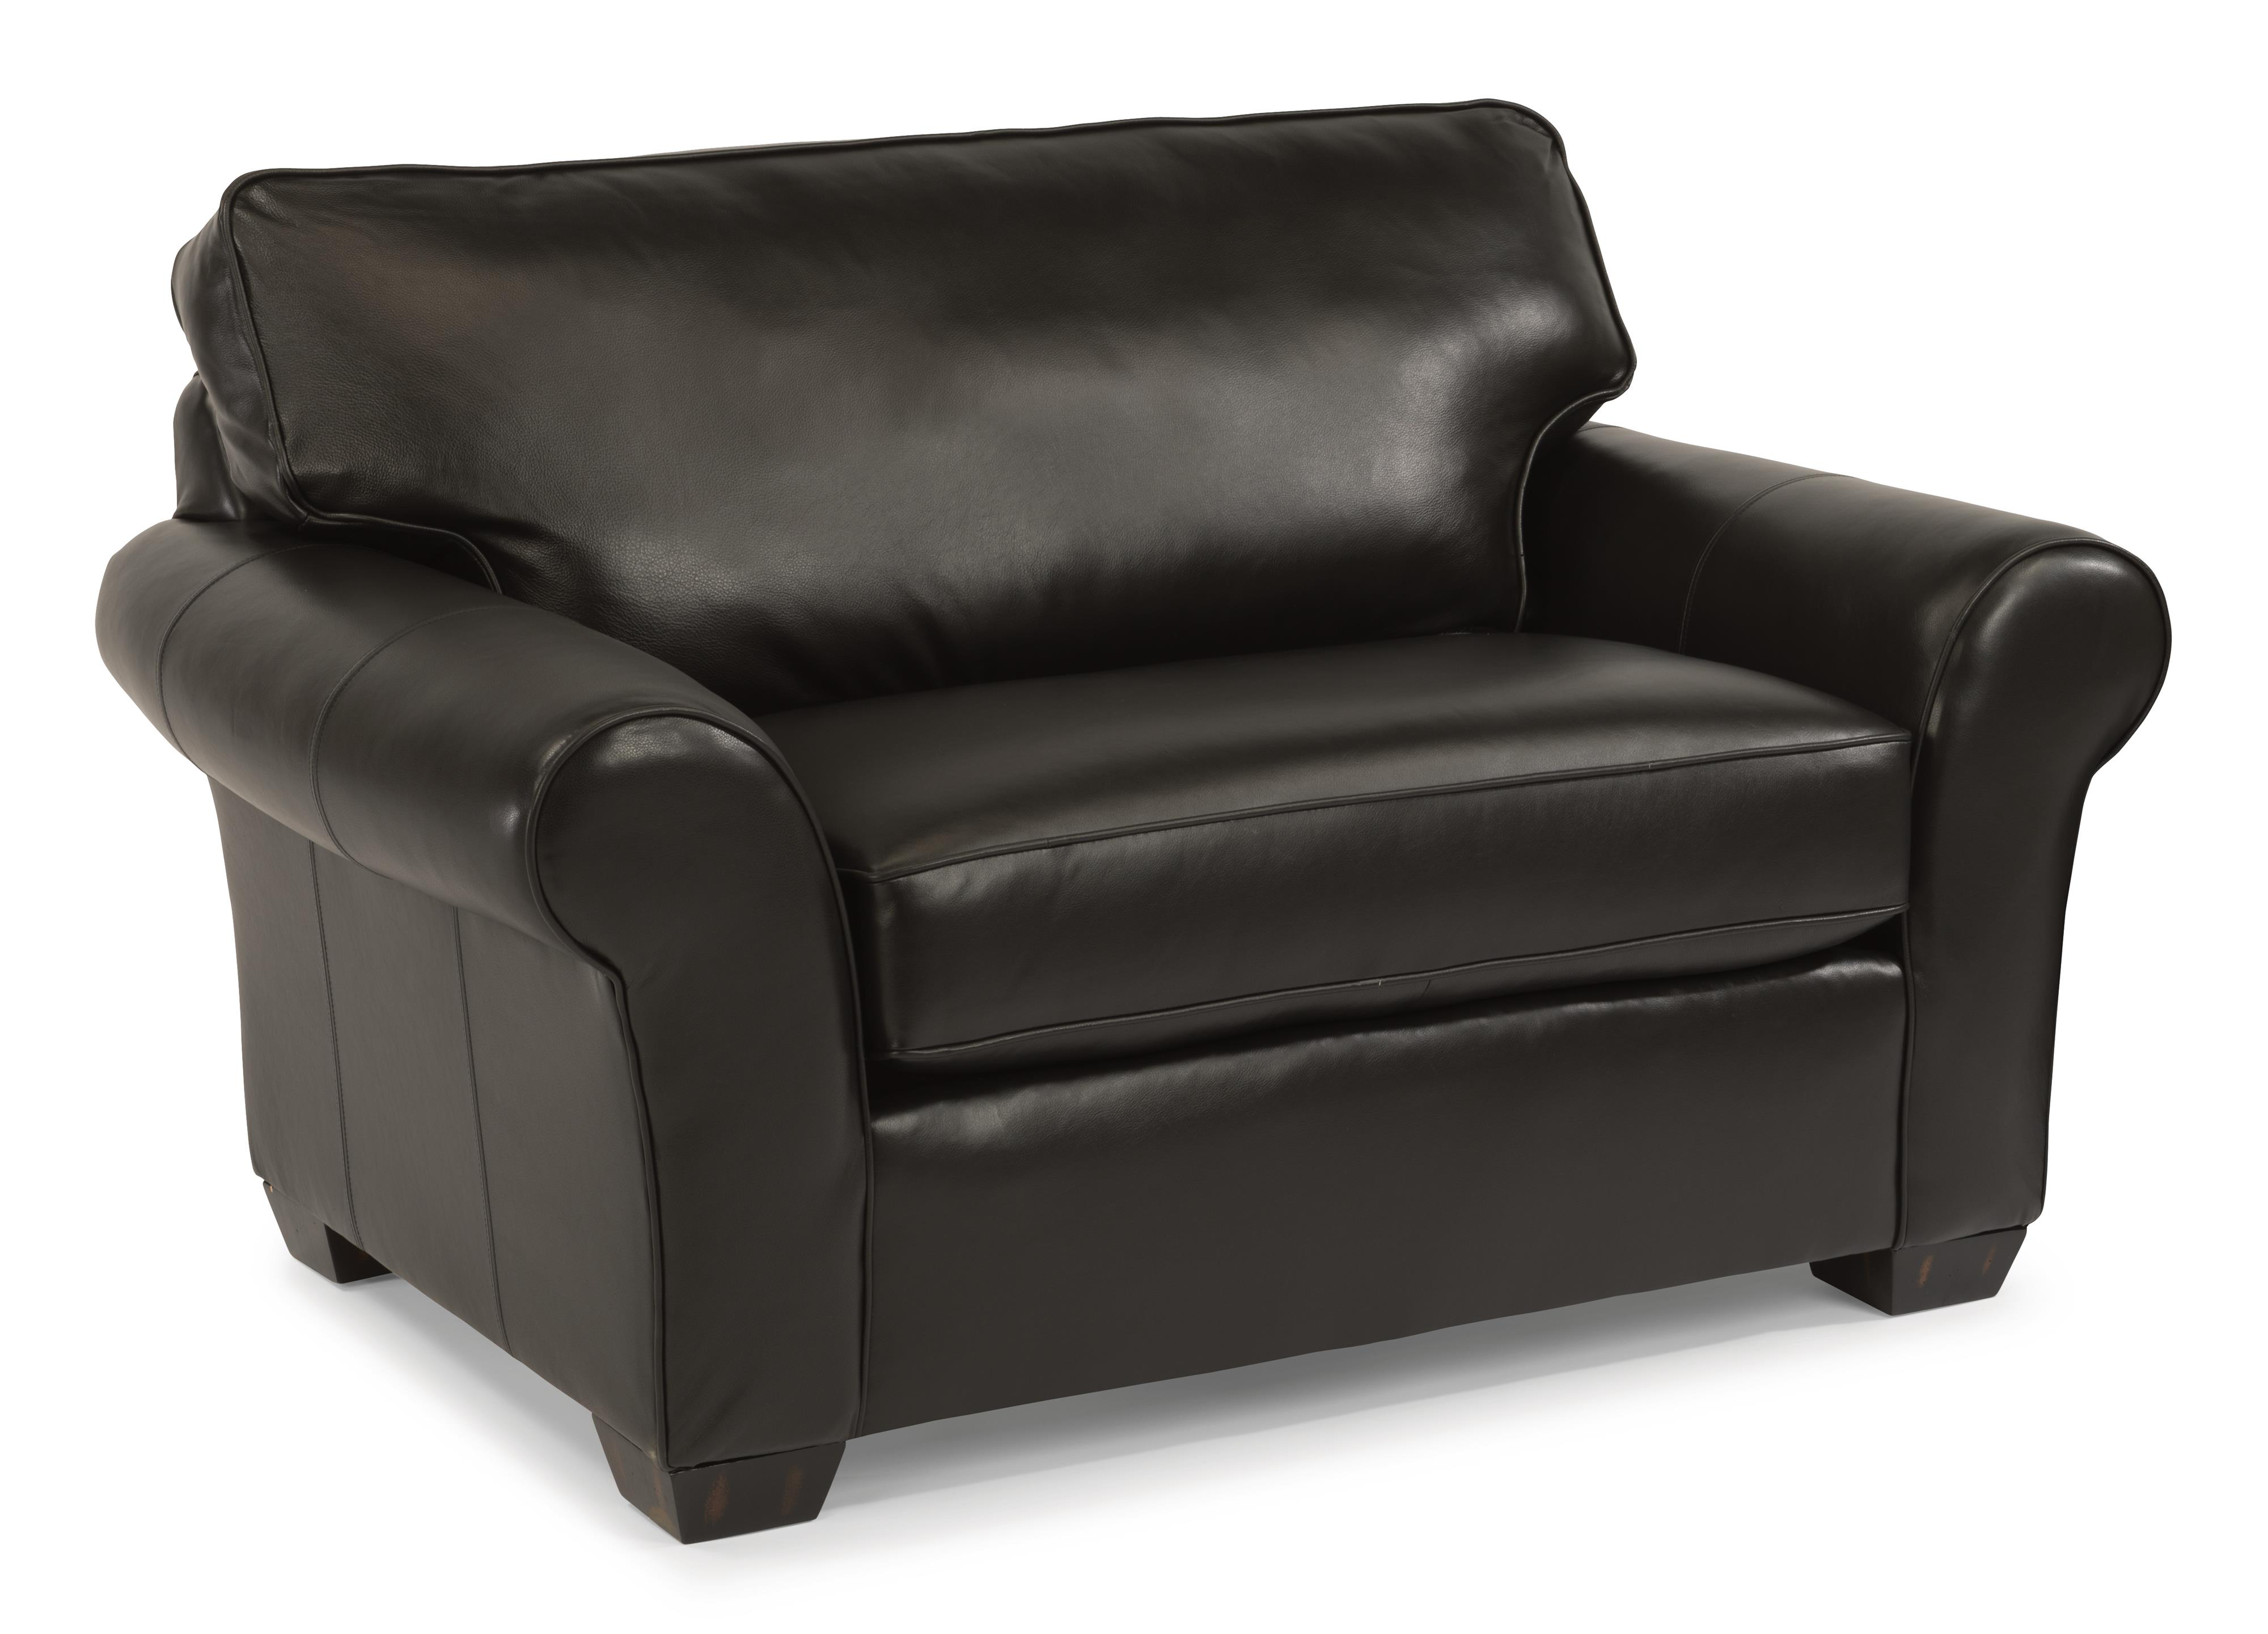 Vail Chair and 1/2 by Flexsteel at Jordan's Home Furnishings